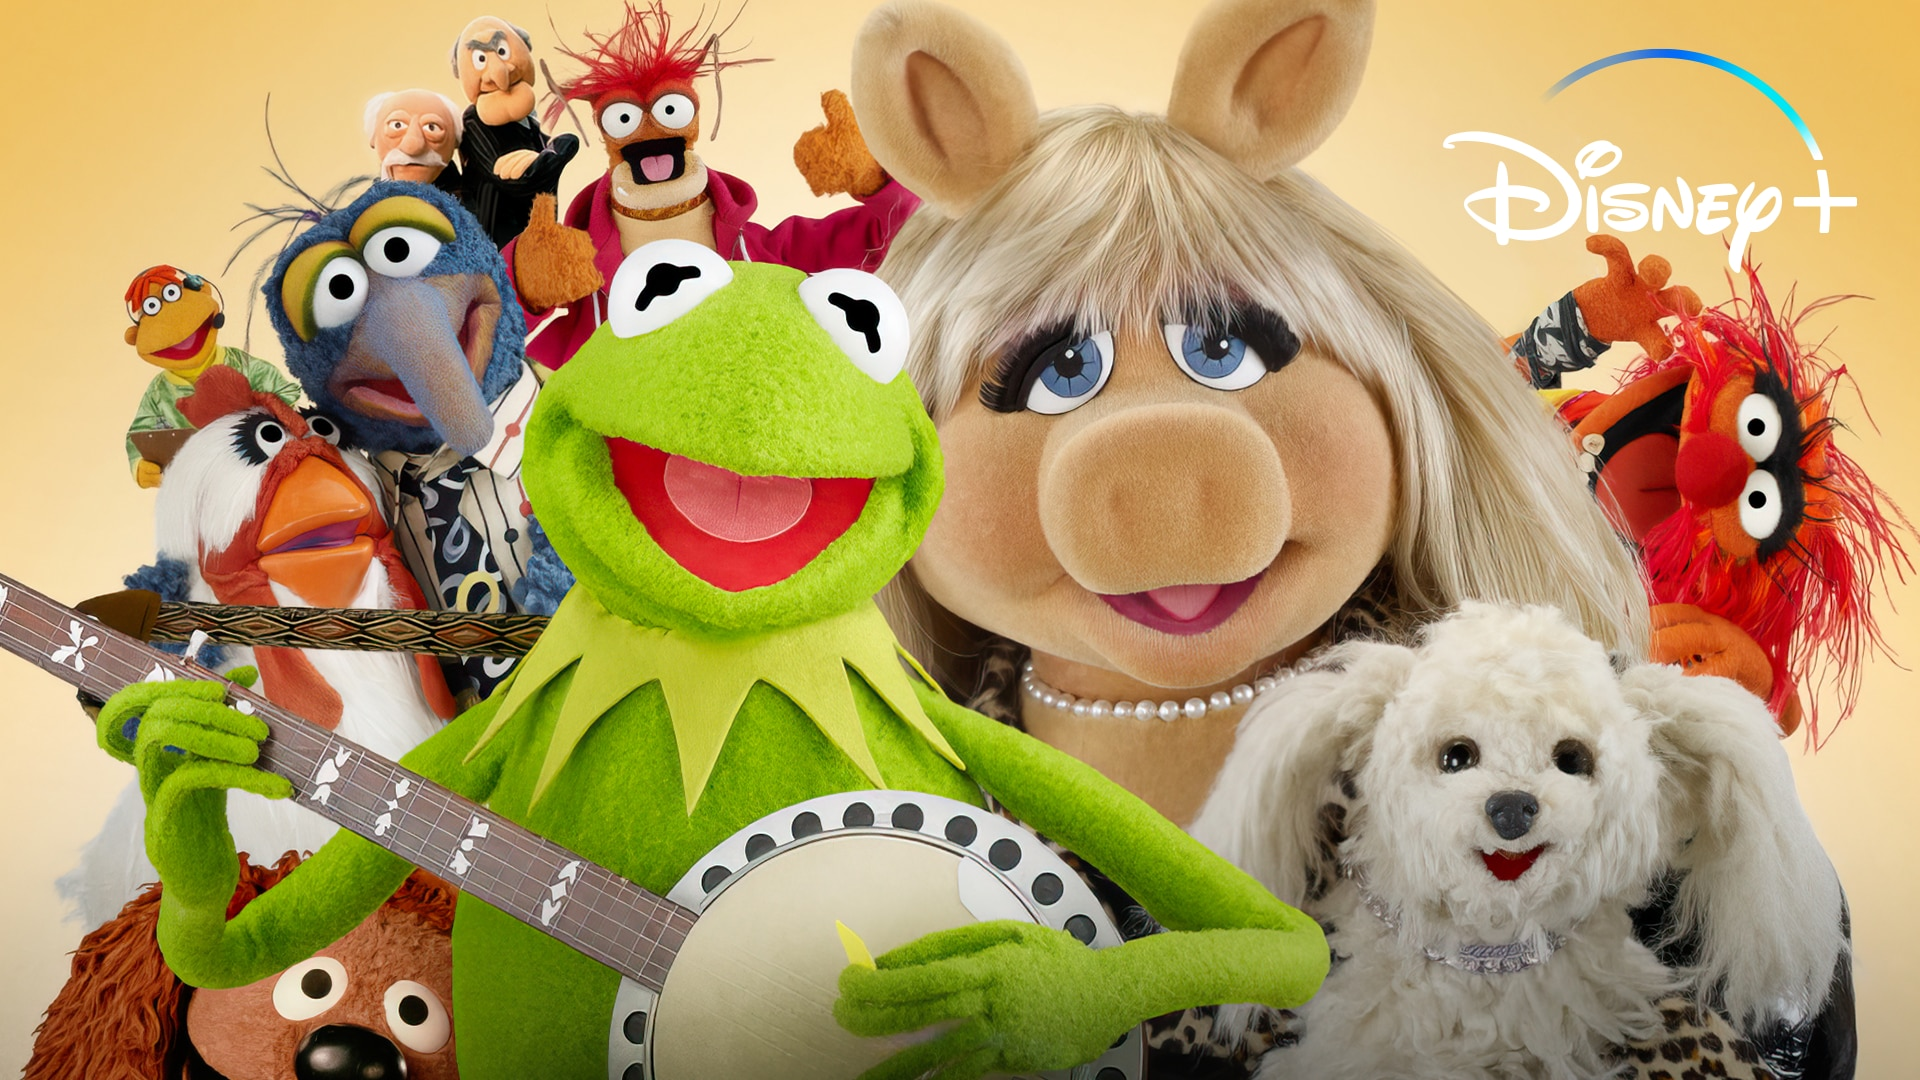 The Muppets Through the Years   Disney+